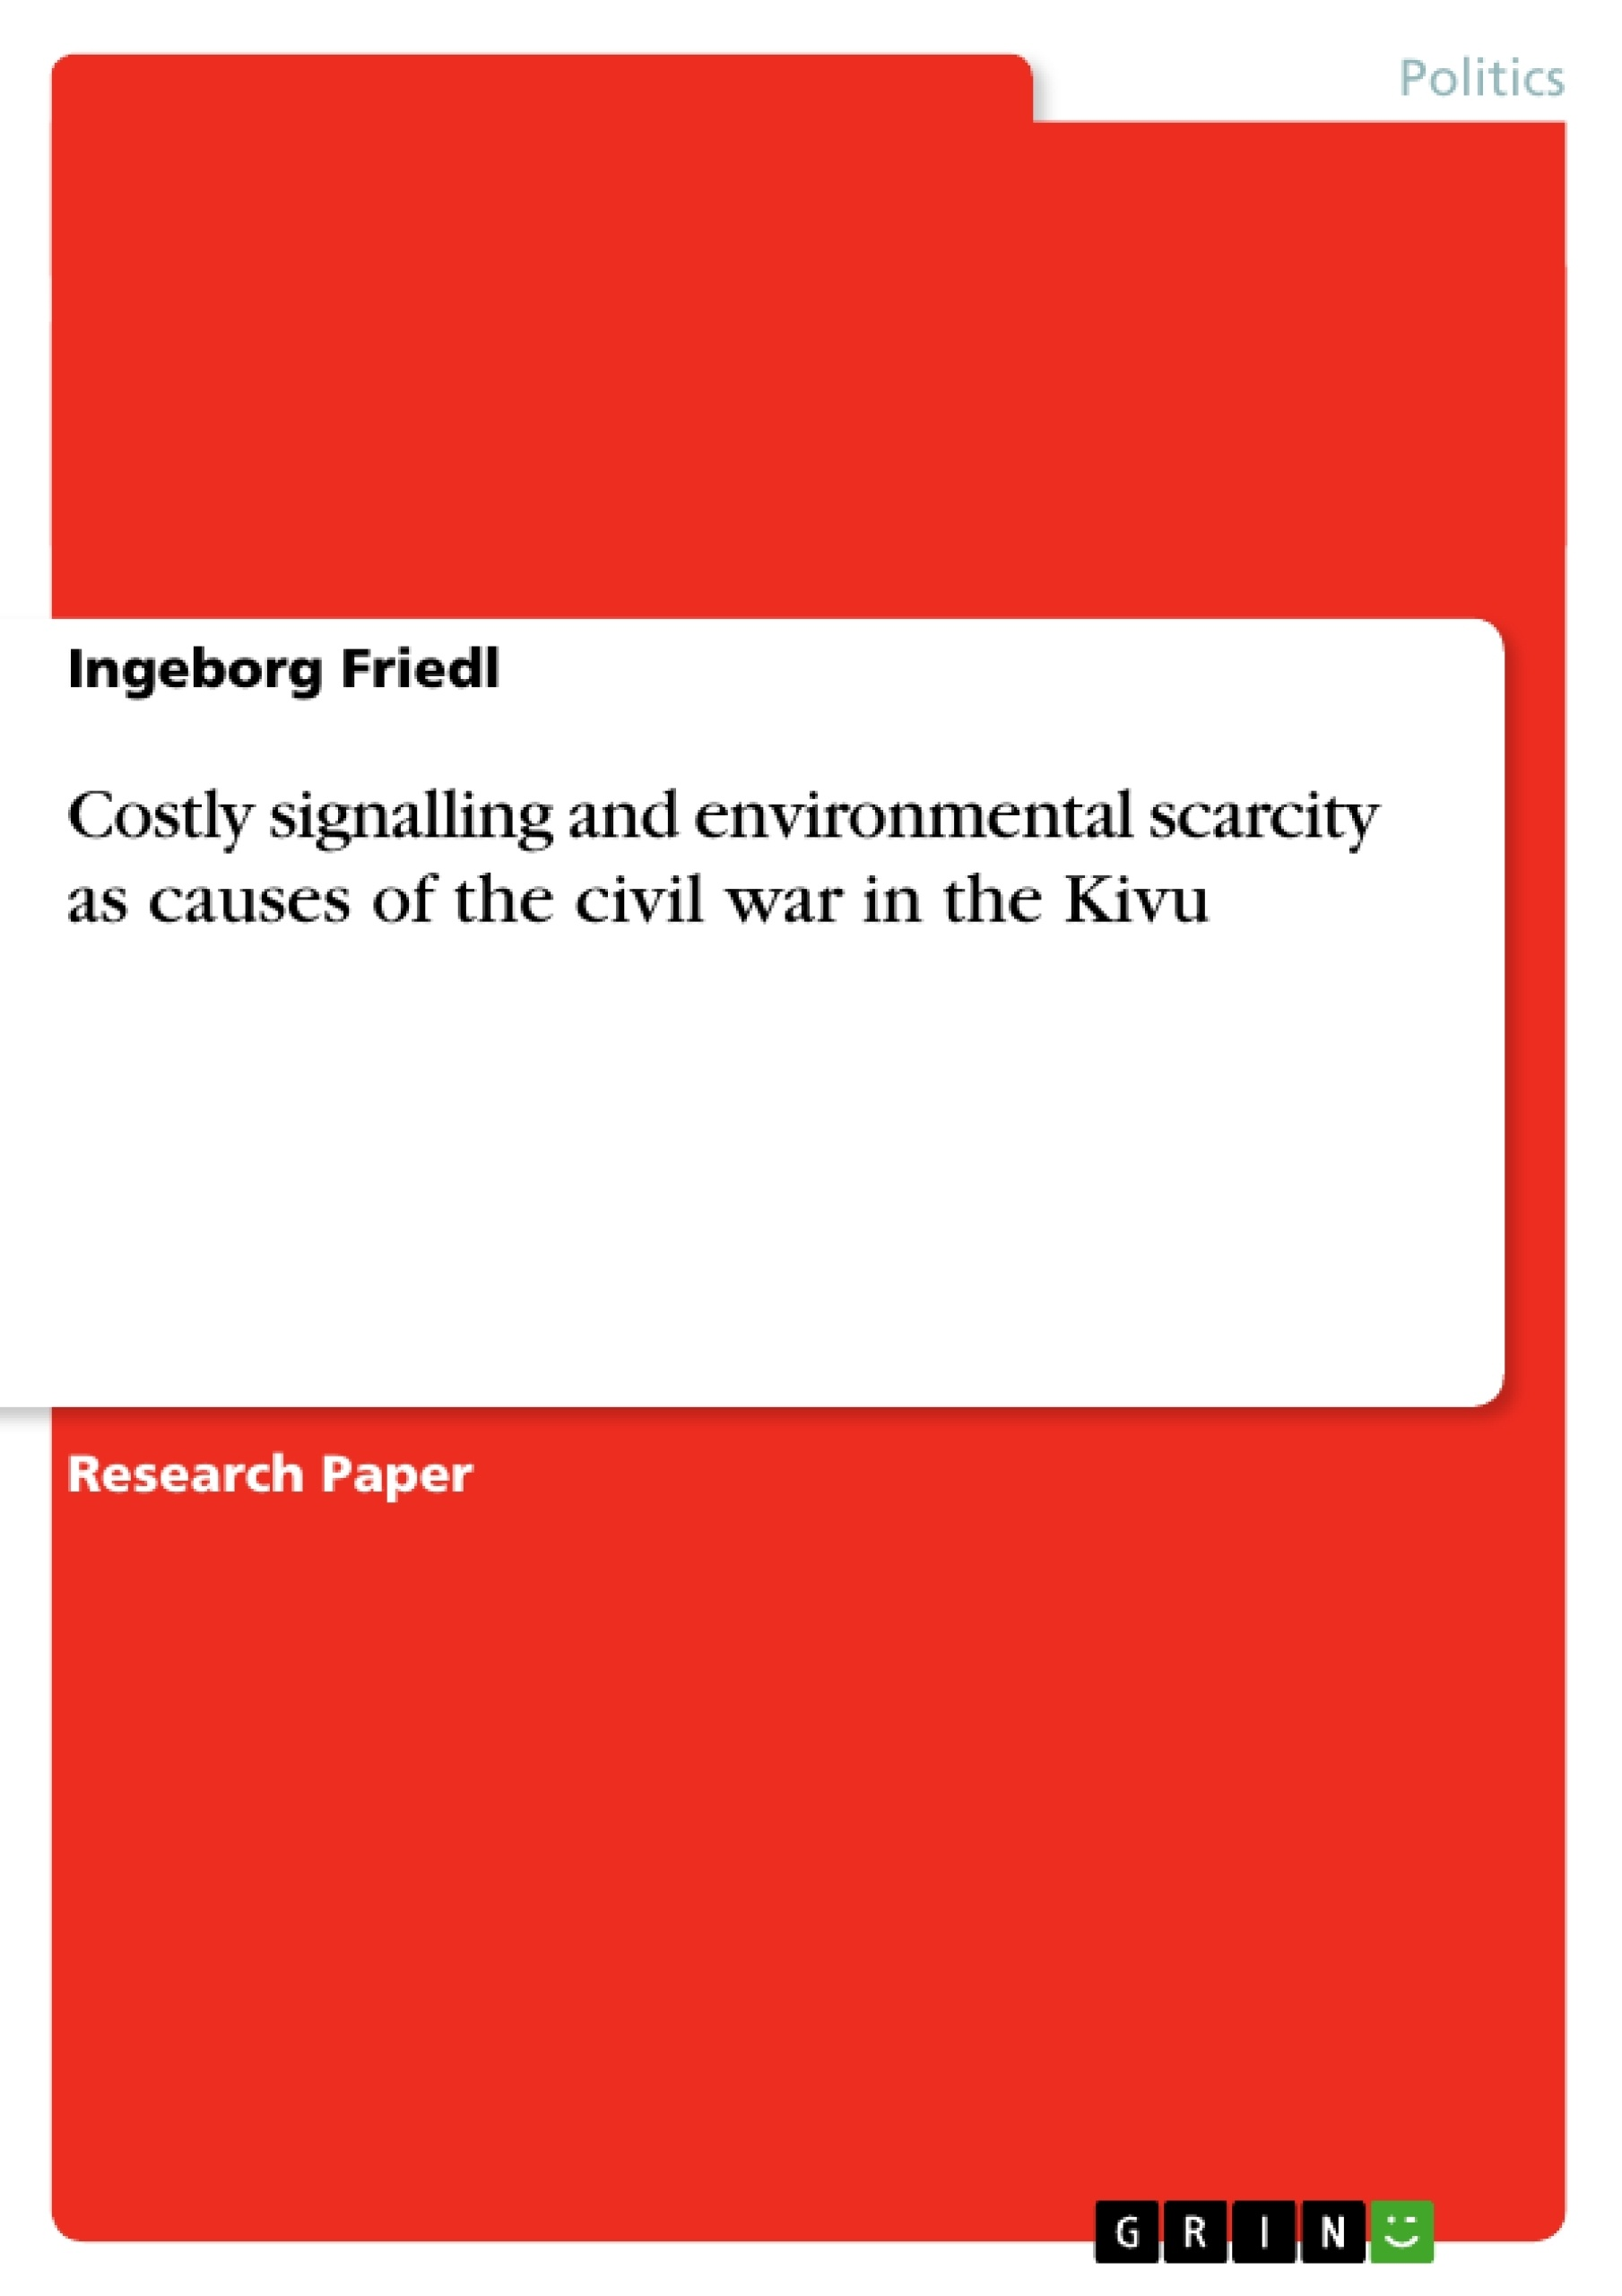 Title: Costly signalling and environmental scarcity as causes of the civil war in the Kivu